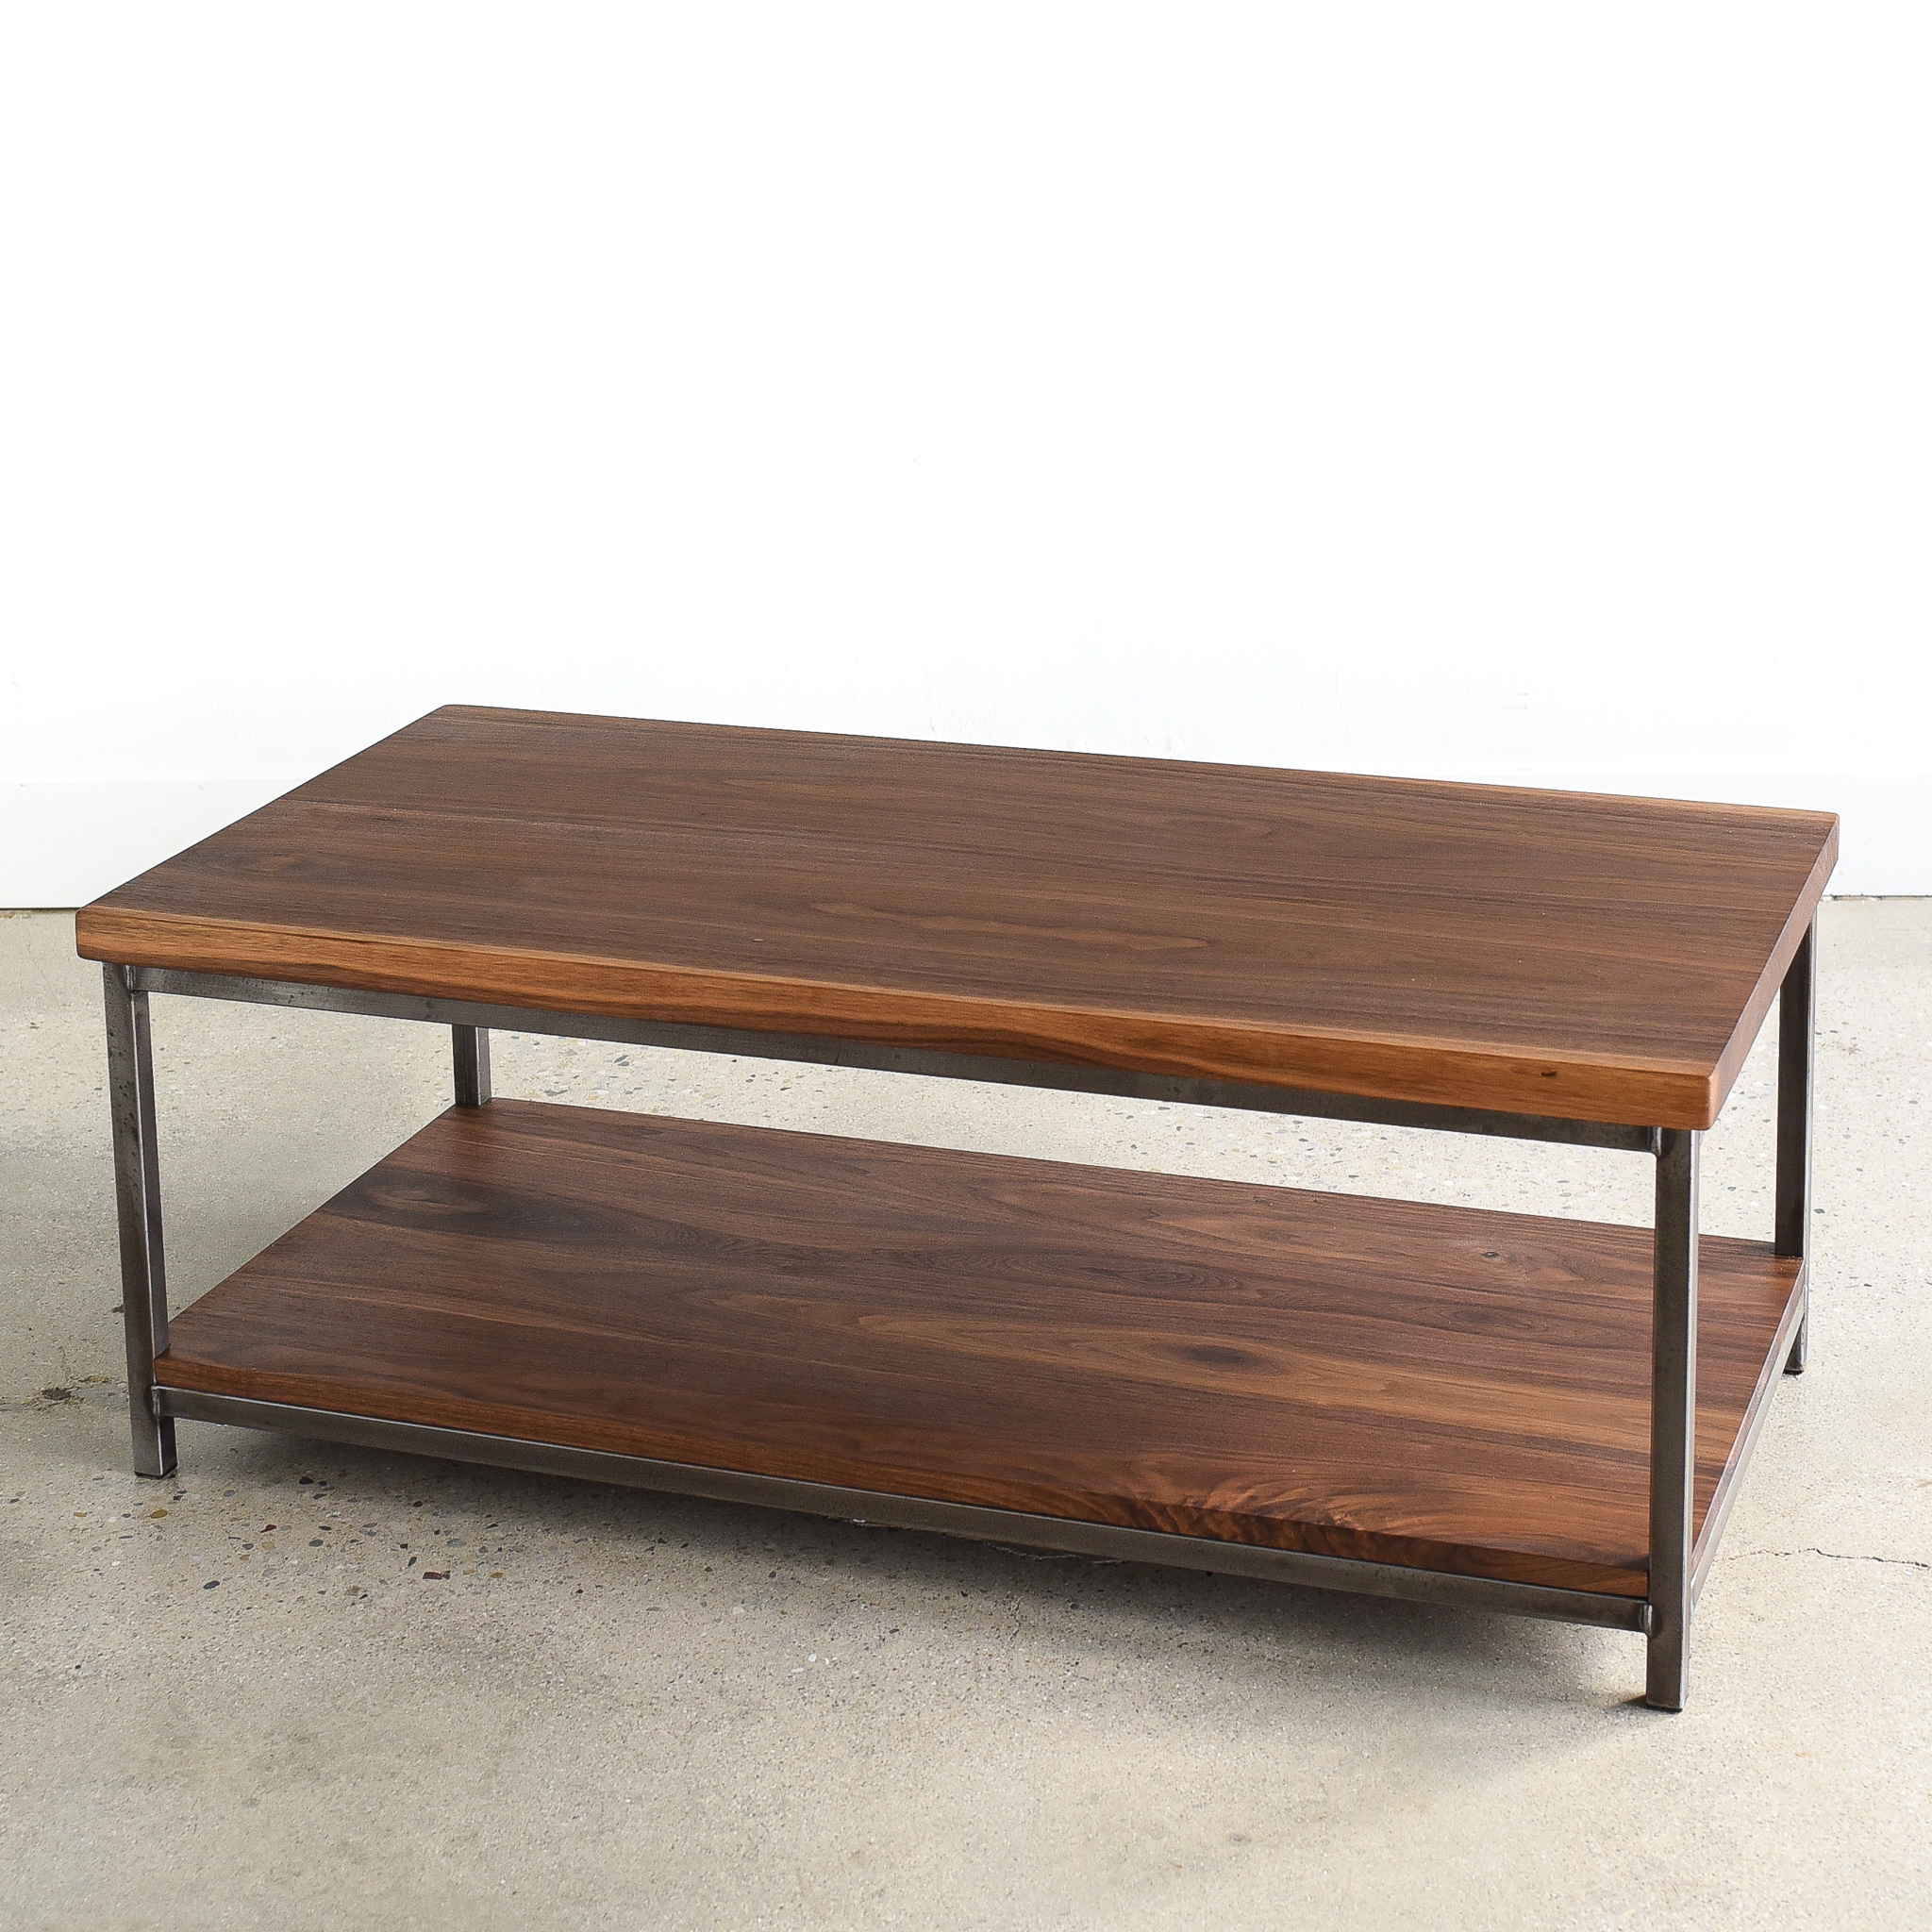 Stoic Walnut Wood Coffee Table Lower Shelf What We Make